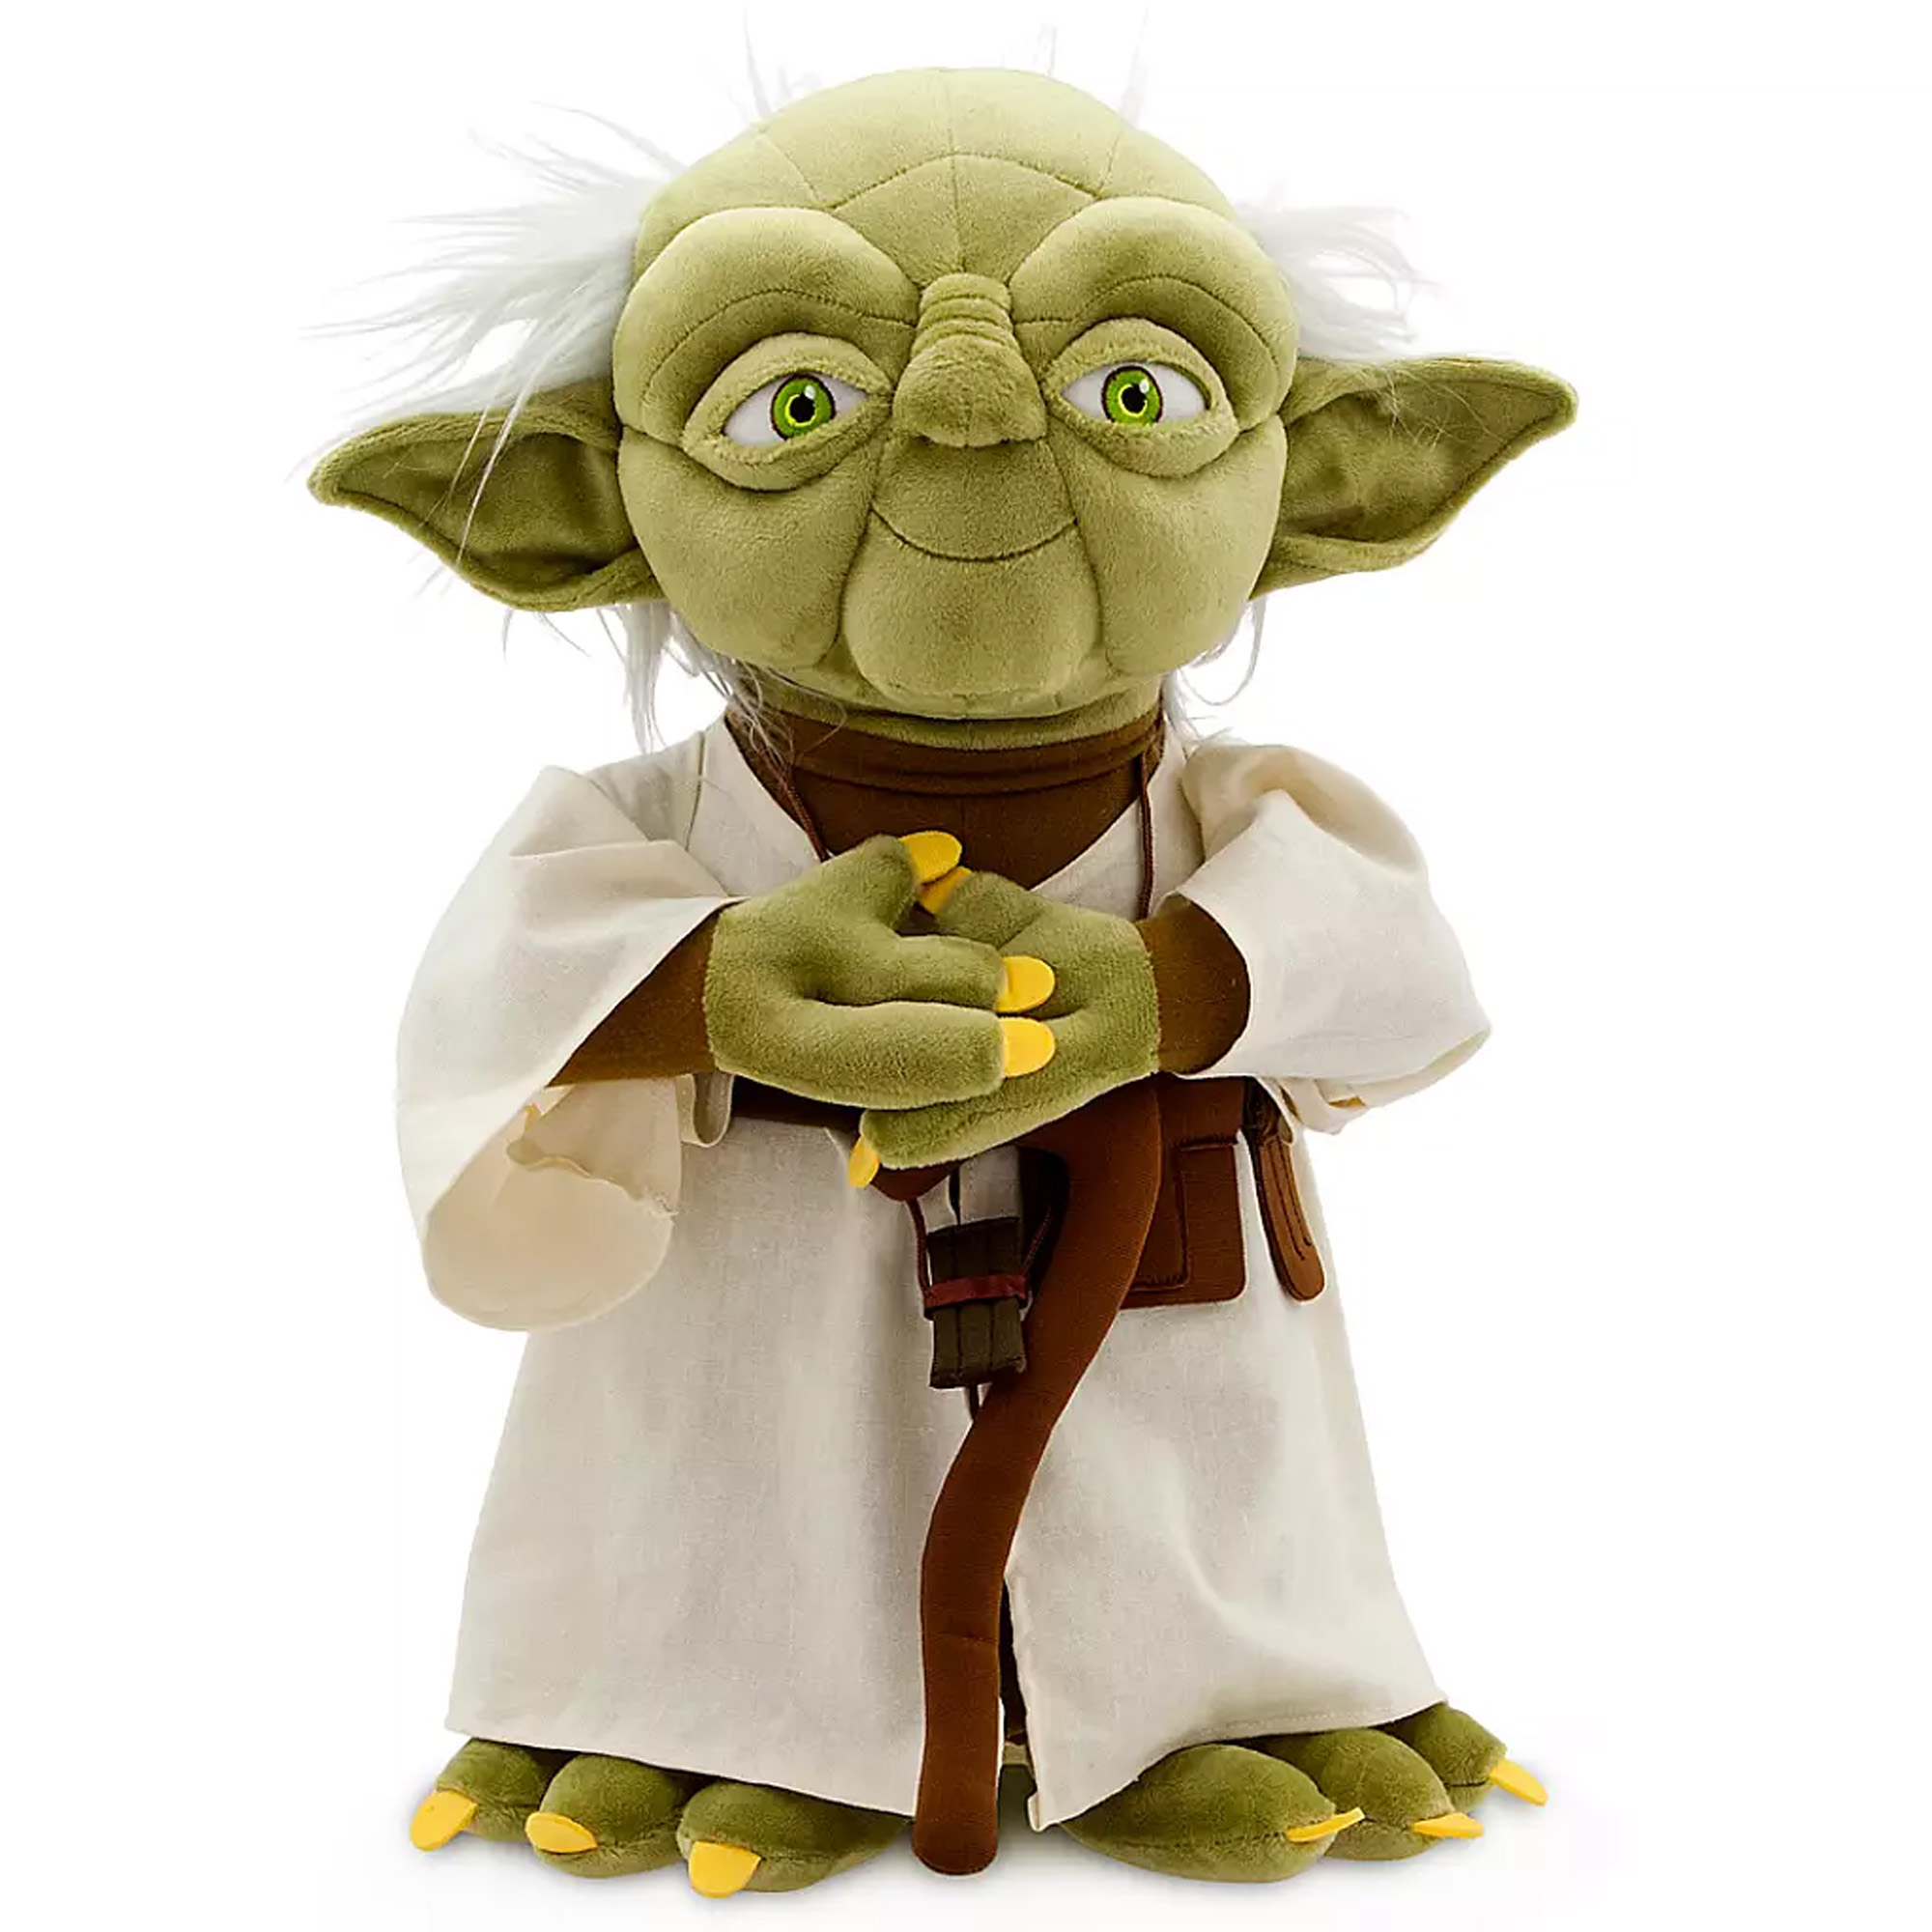 Disney Star Wars The Empire Strikes Back 40th Anniversary Yoda